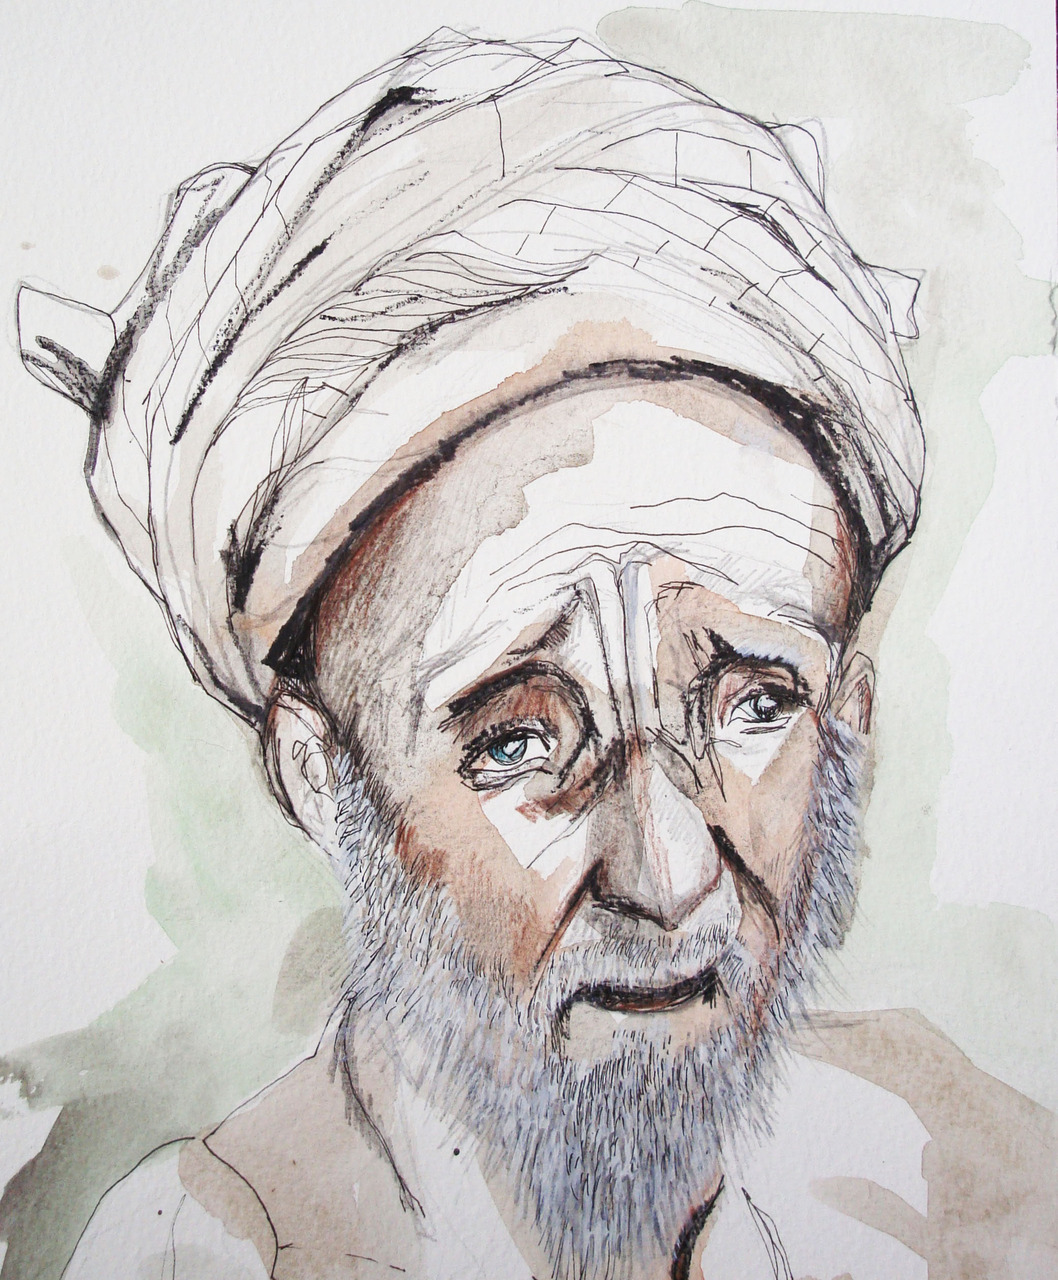 PORTRAIT A WEEK: victims of the flooding in Pakistan. 20 million people are thought to have been affected by the floods that occured 3 weeks ago. The country is still suffering and in need of international aid.   visit   http://www.dec.org.uk/   to help!   here are more sketches of people affected by the disaster.